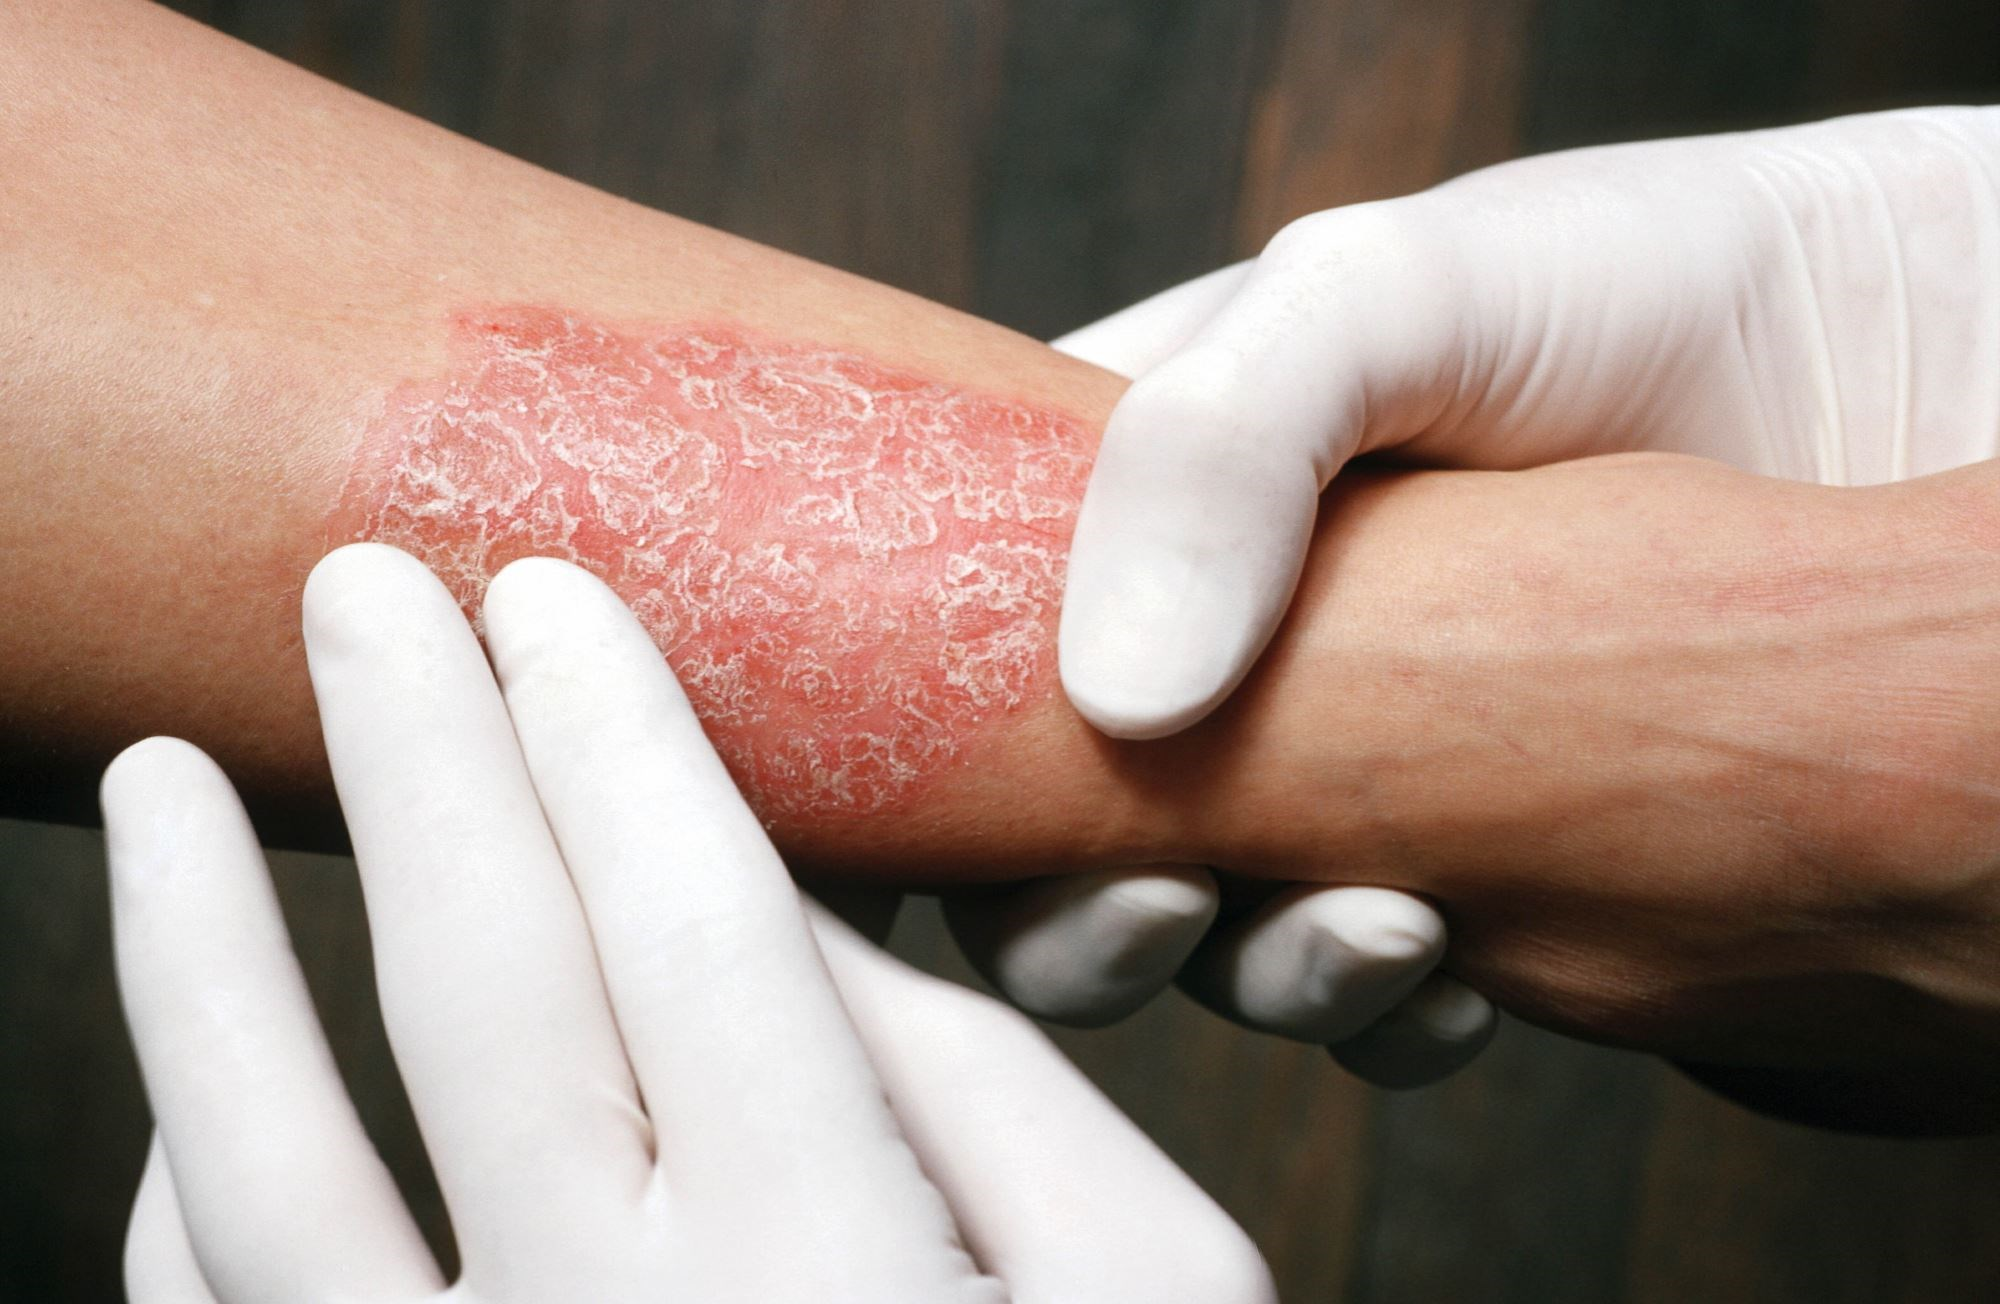 Lower Concentration Halobetasol Lotion as Effective as Cream for Psoriasis